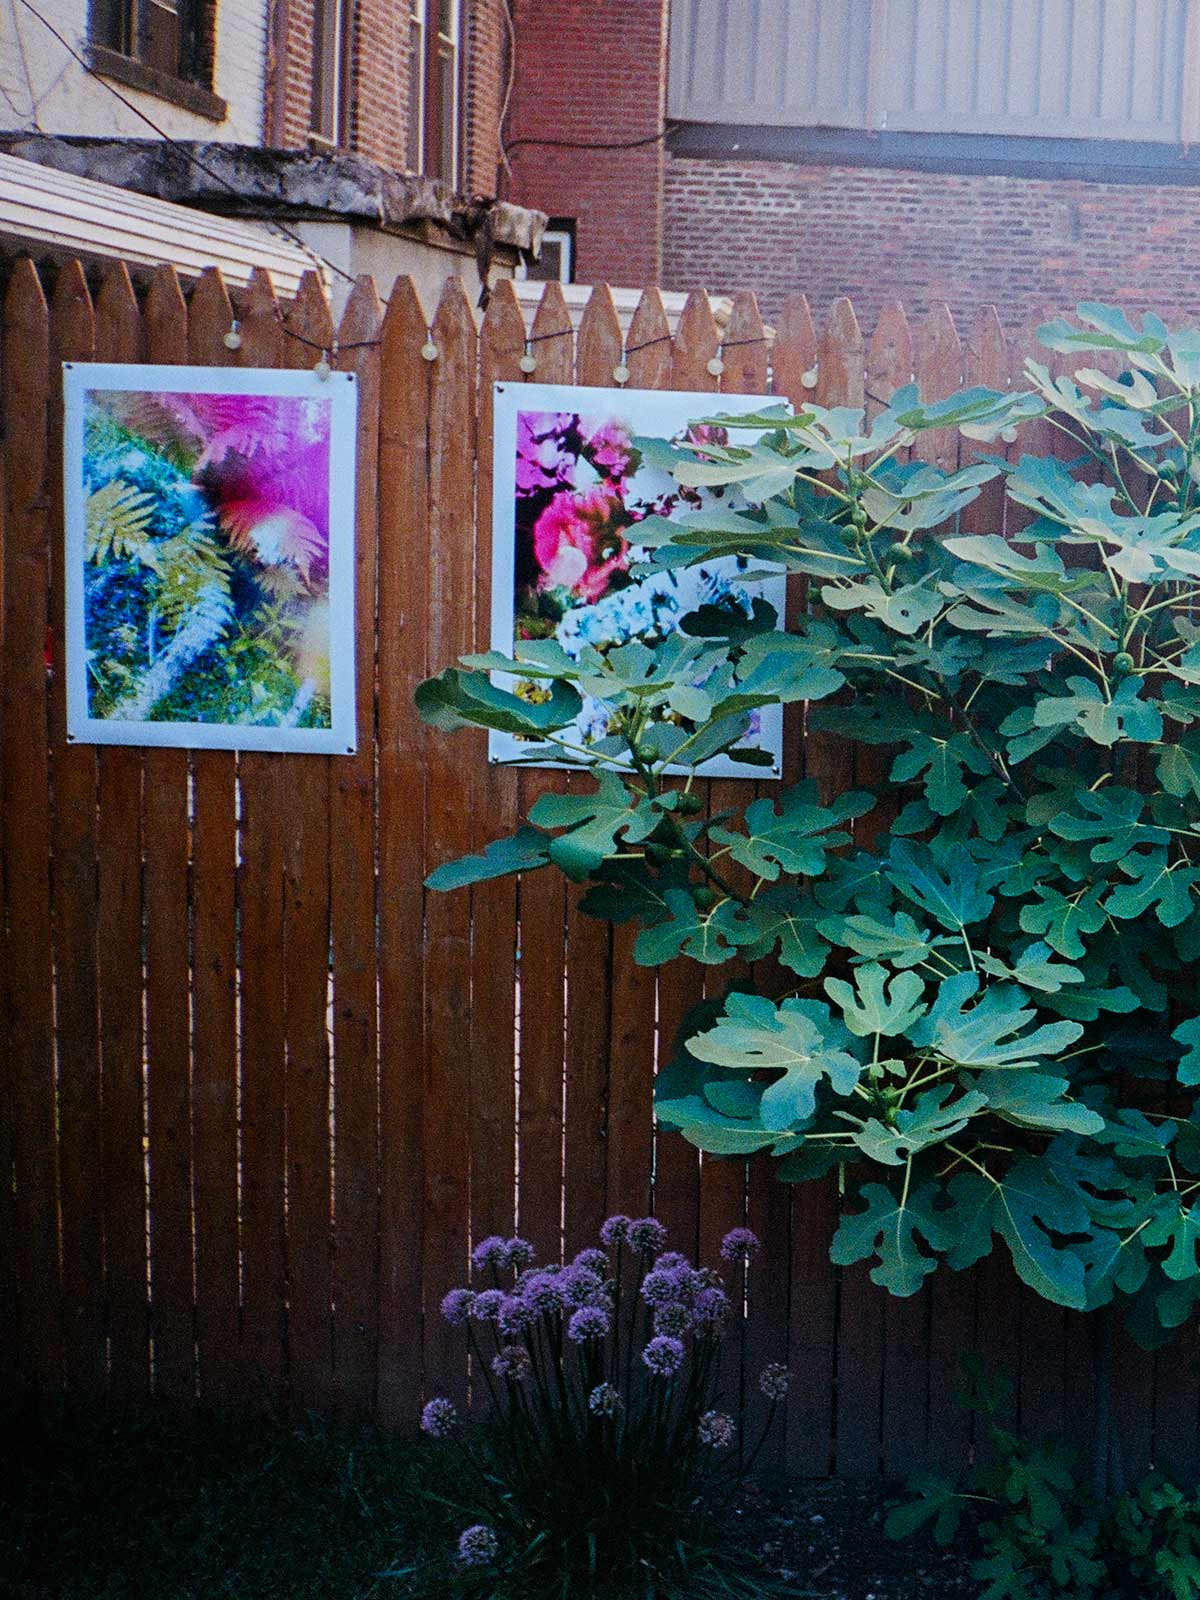 The Great Escape: Inside Karine Laval's intimate Brooklyn backyard photography show